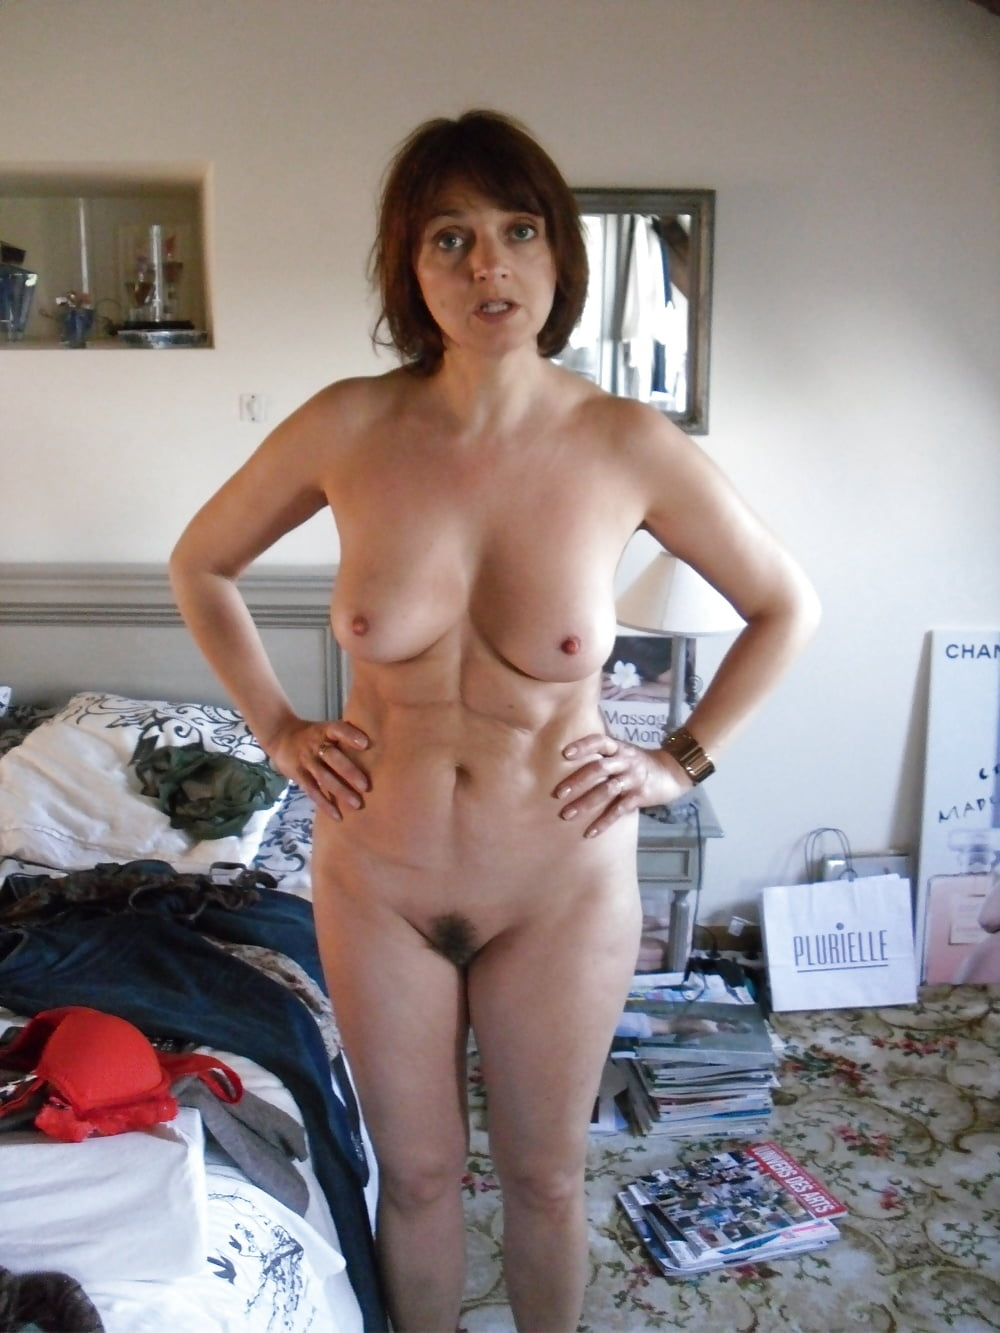 French milfs nude, straight anal sex stories